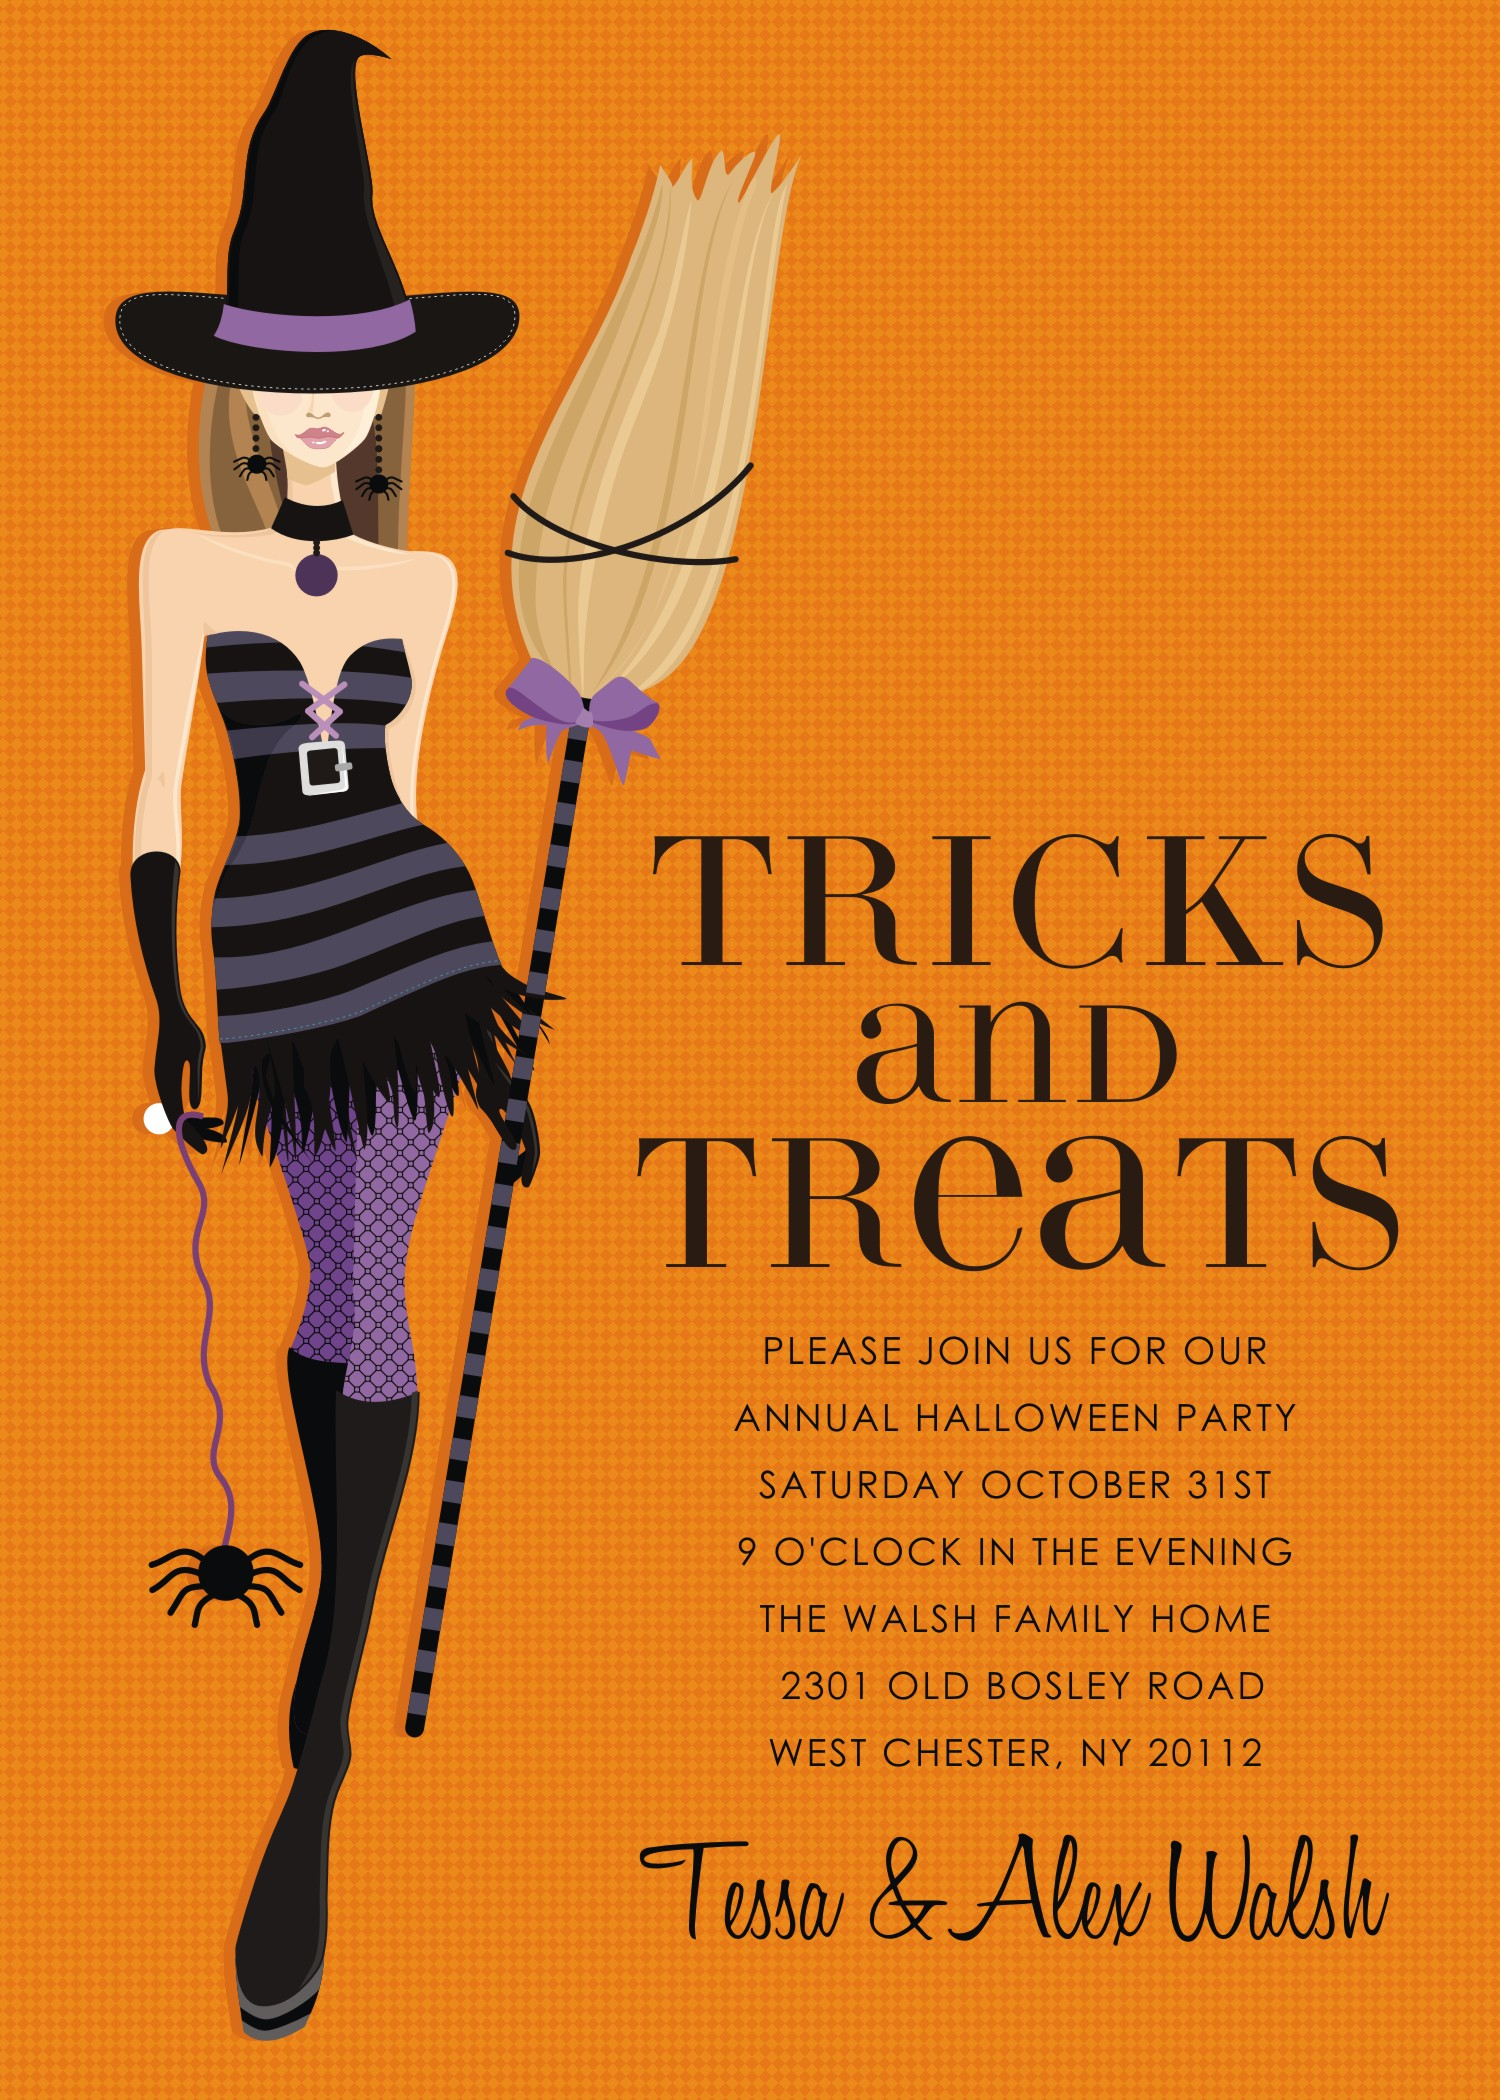 Printable Halloween Invitations was good invitation example